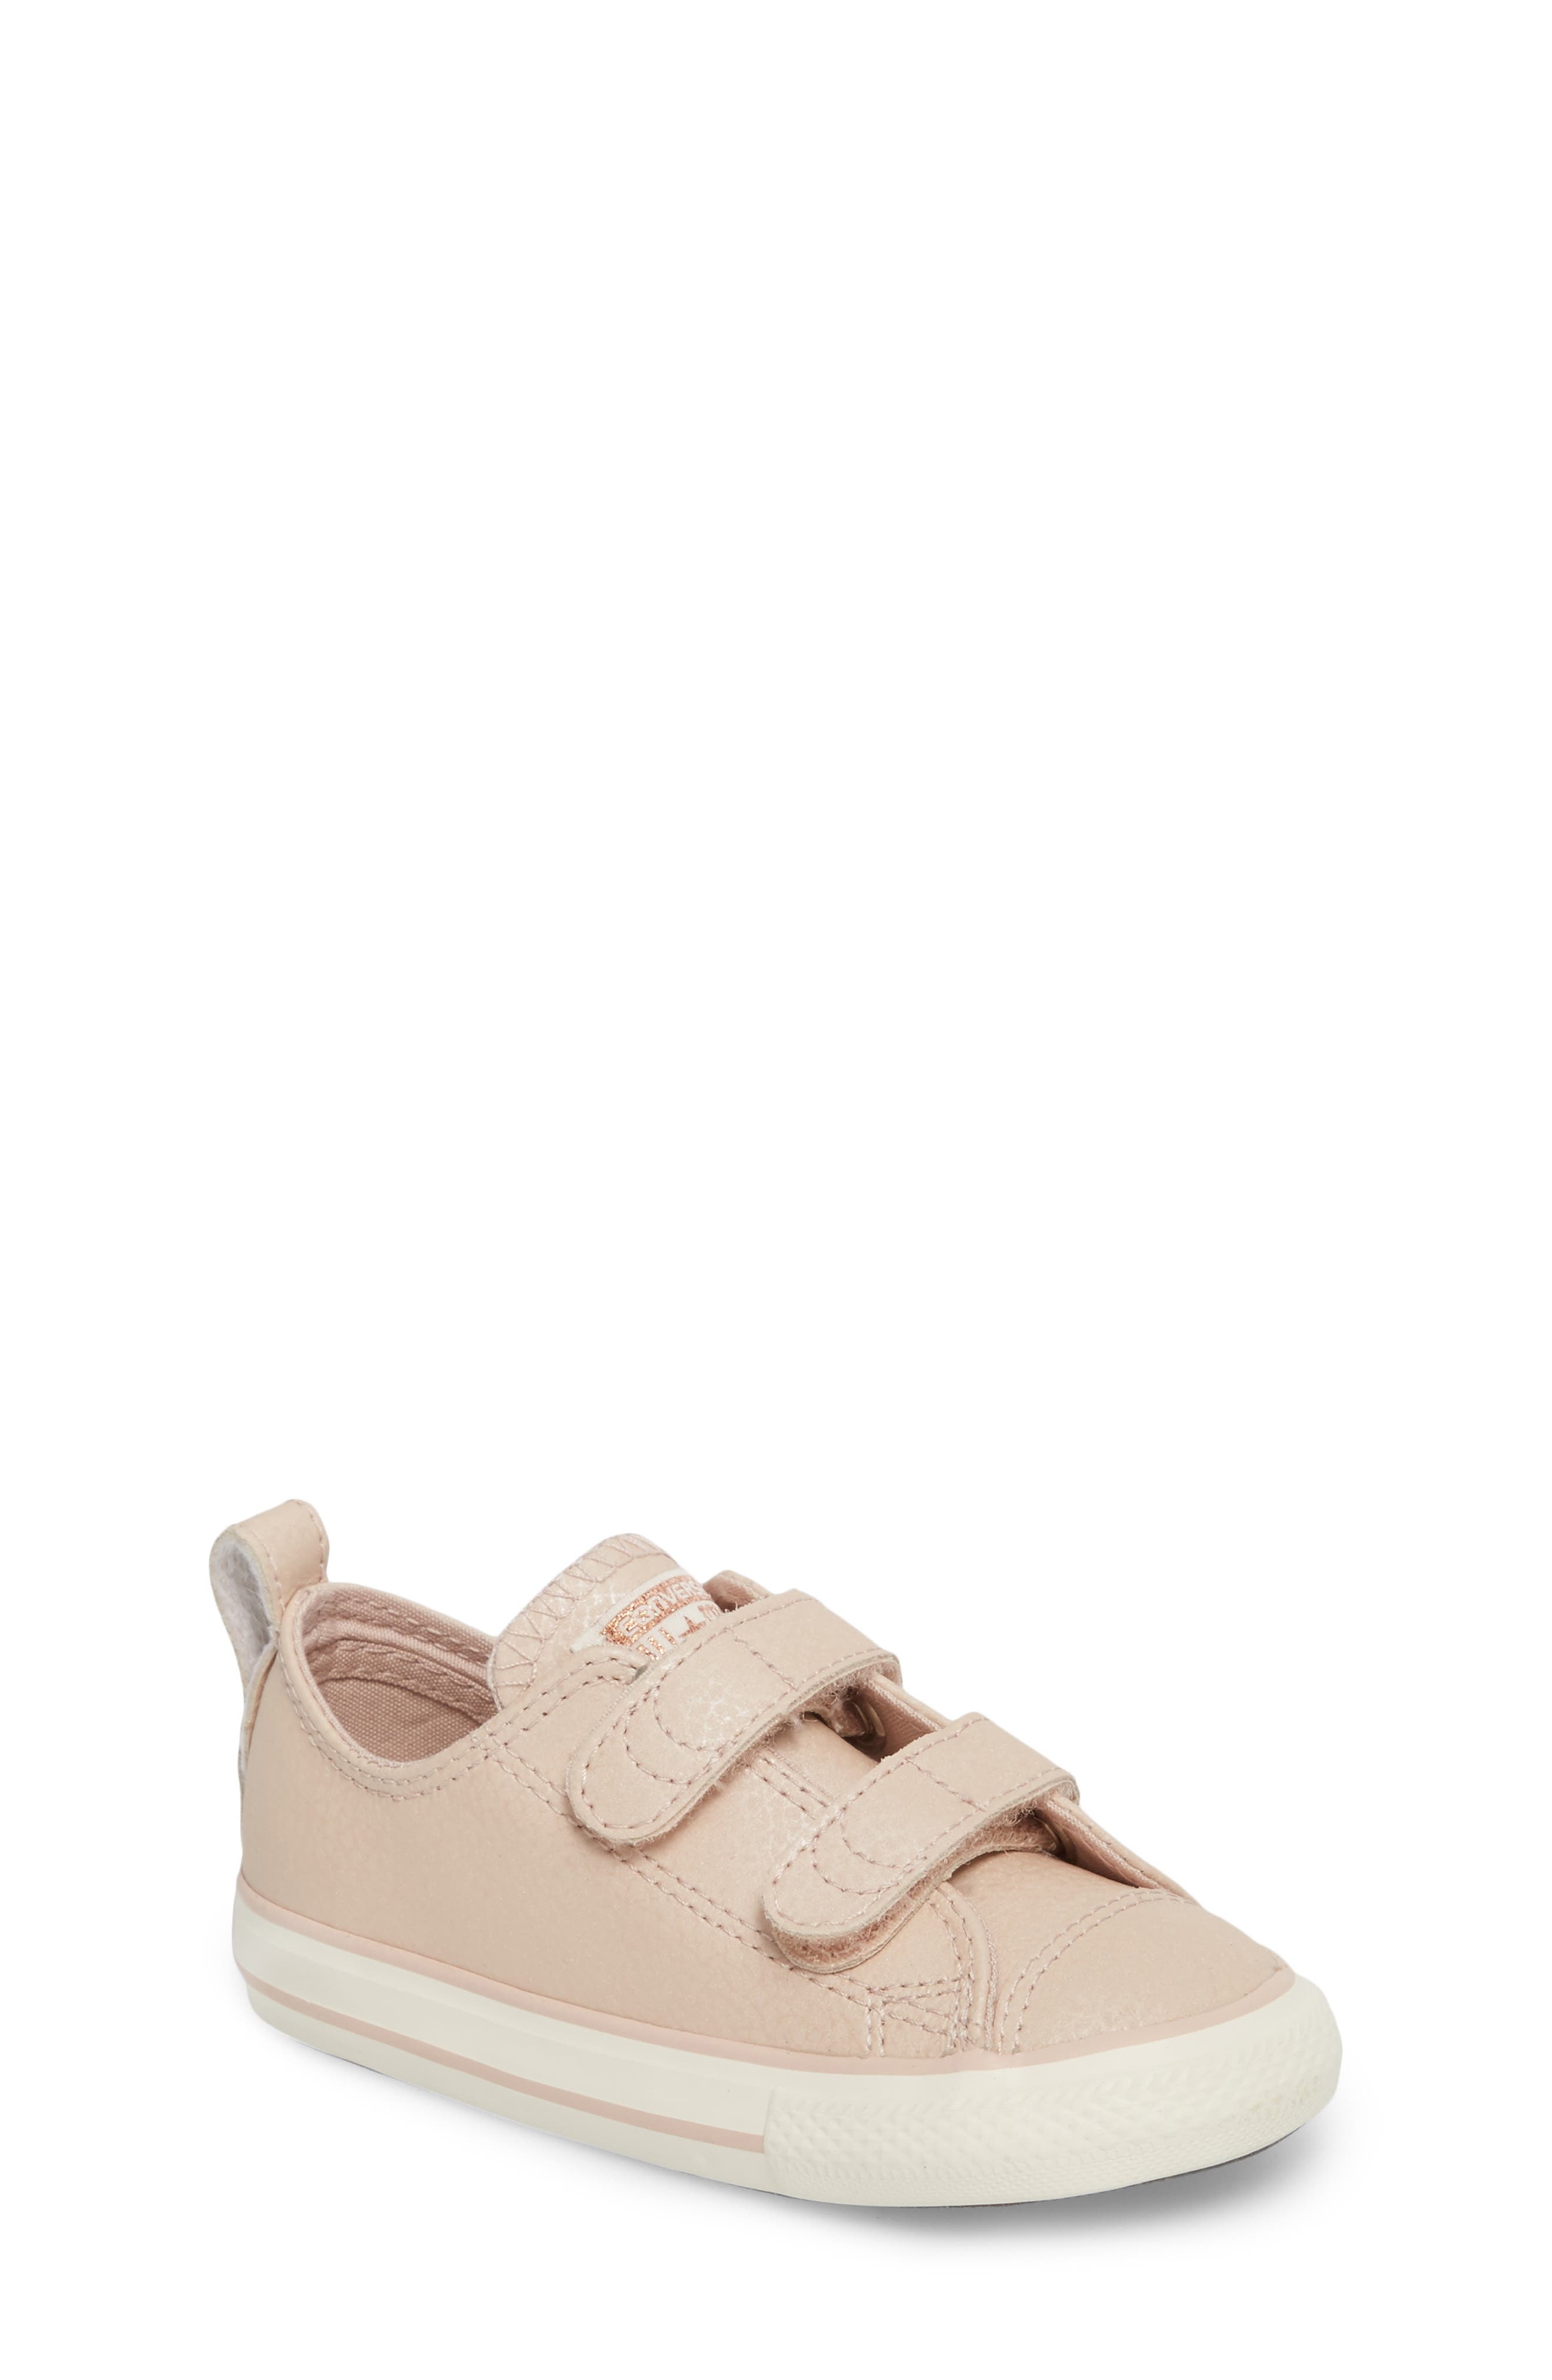 All Star<sup>®</sup> Fashion 2V Low Top Sneaker,                             Main thumbnail 1, color,                             Particle Beige